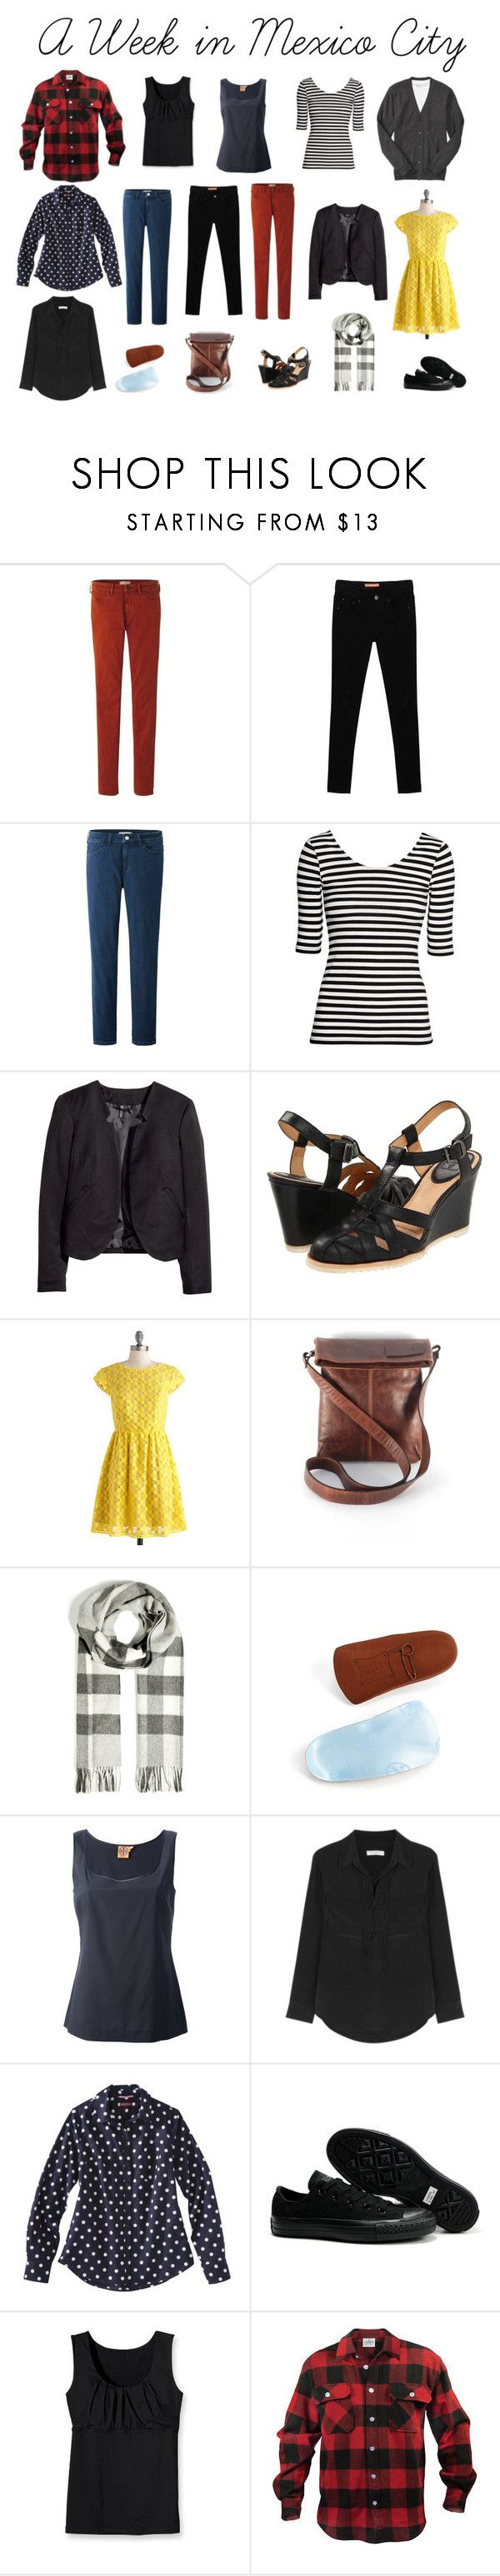 """""""A Week in Mexico City"""" by sharpsusan ❤ liked on Polyvore featuring Uniqlo, Envy Look, H&M, Frye, Kensie Girl, Burberry, Birkenstock, Tory Burch, Isabel Marant and Converse"""